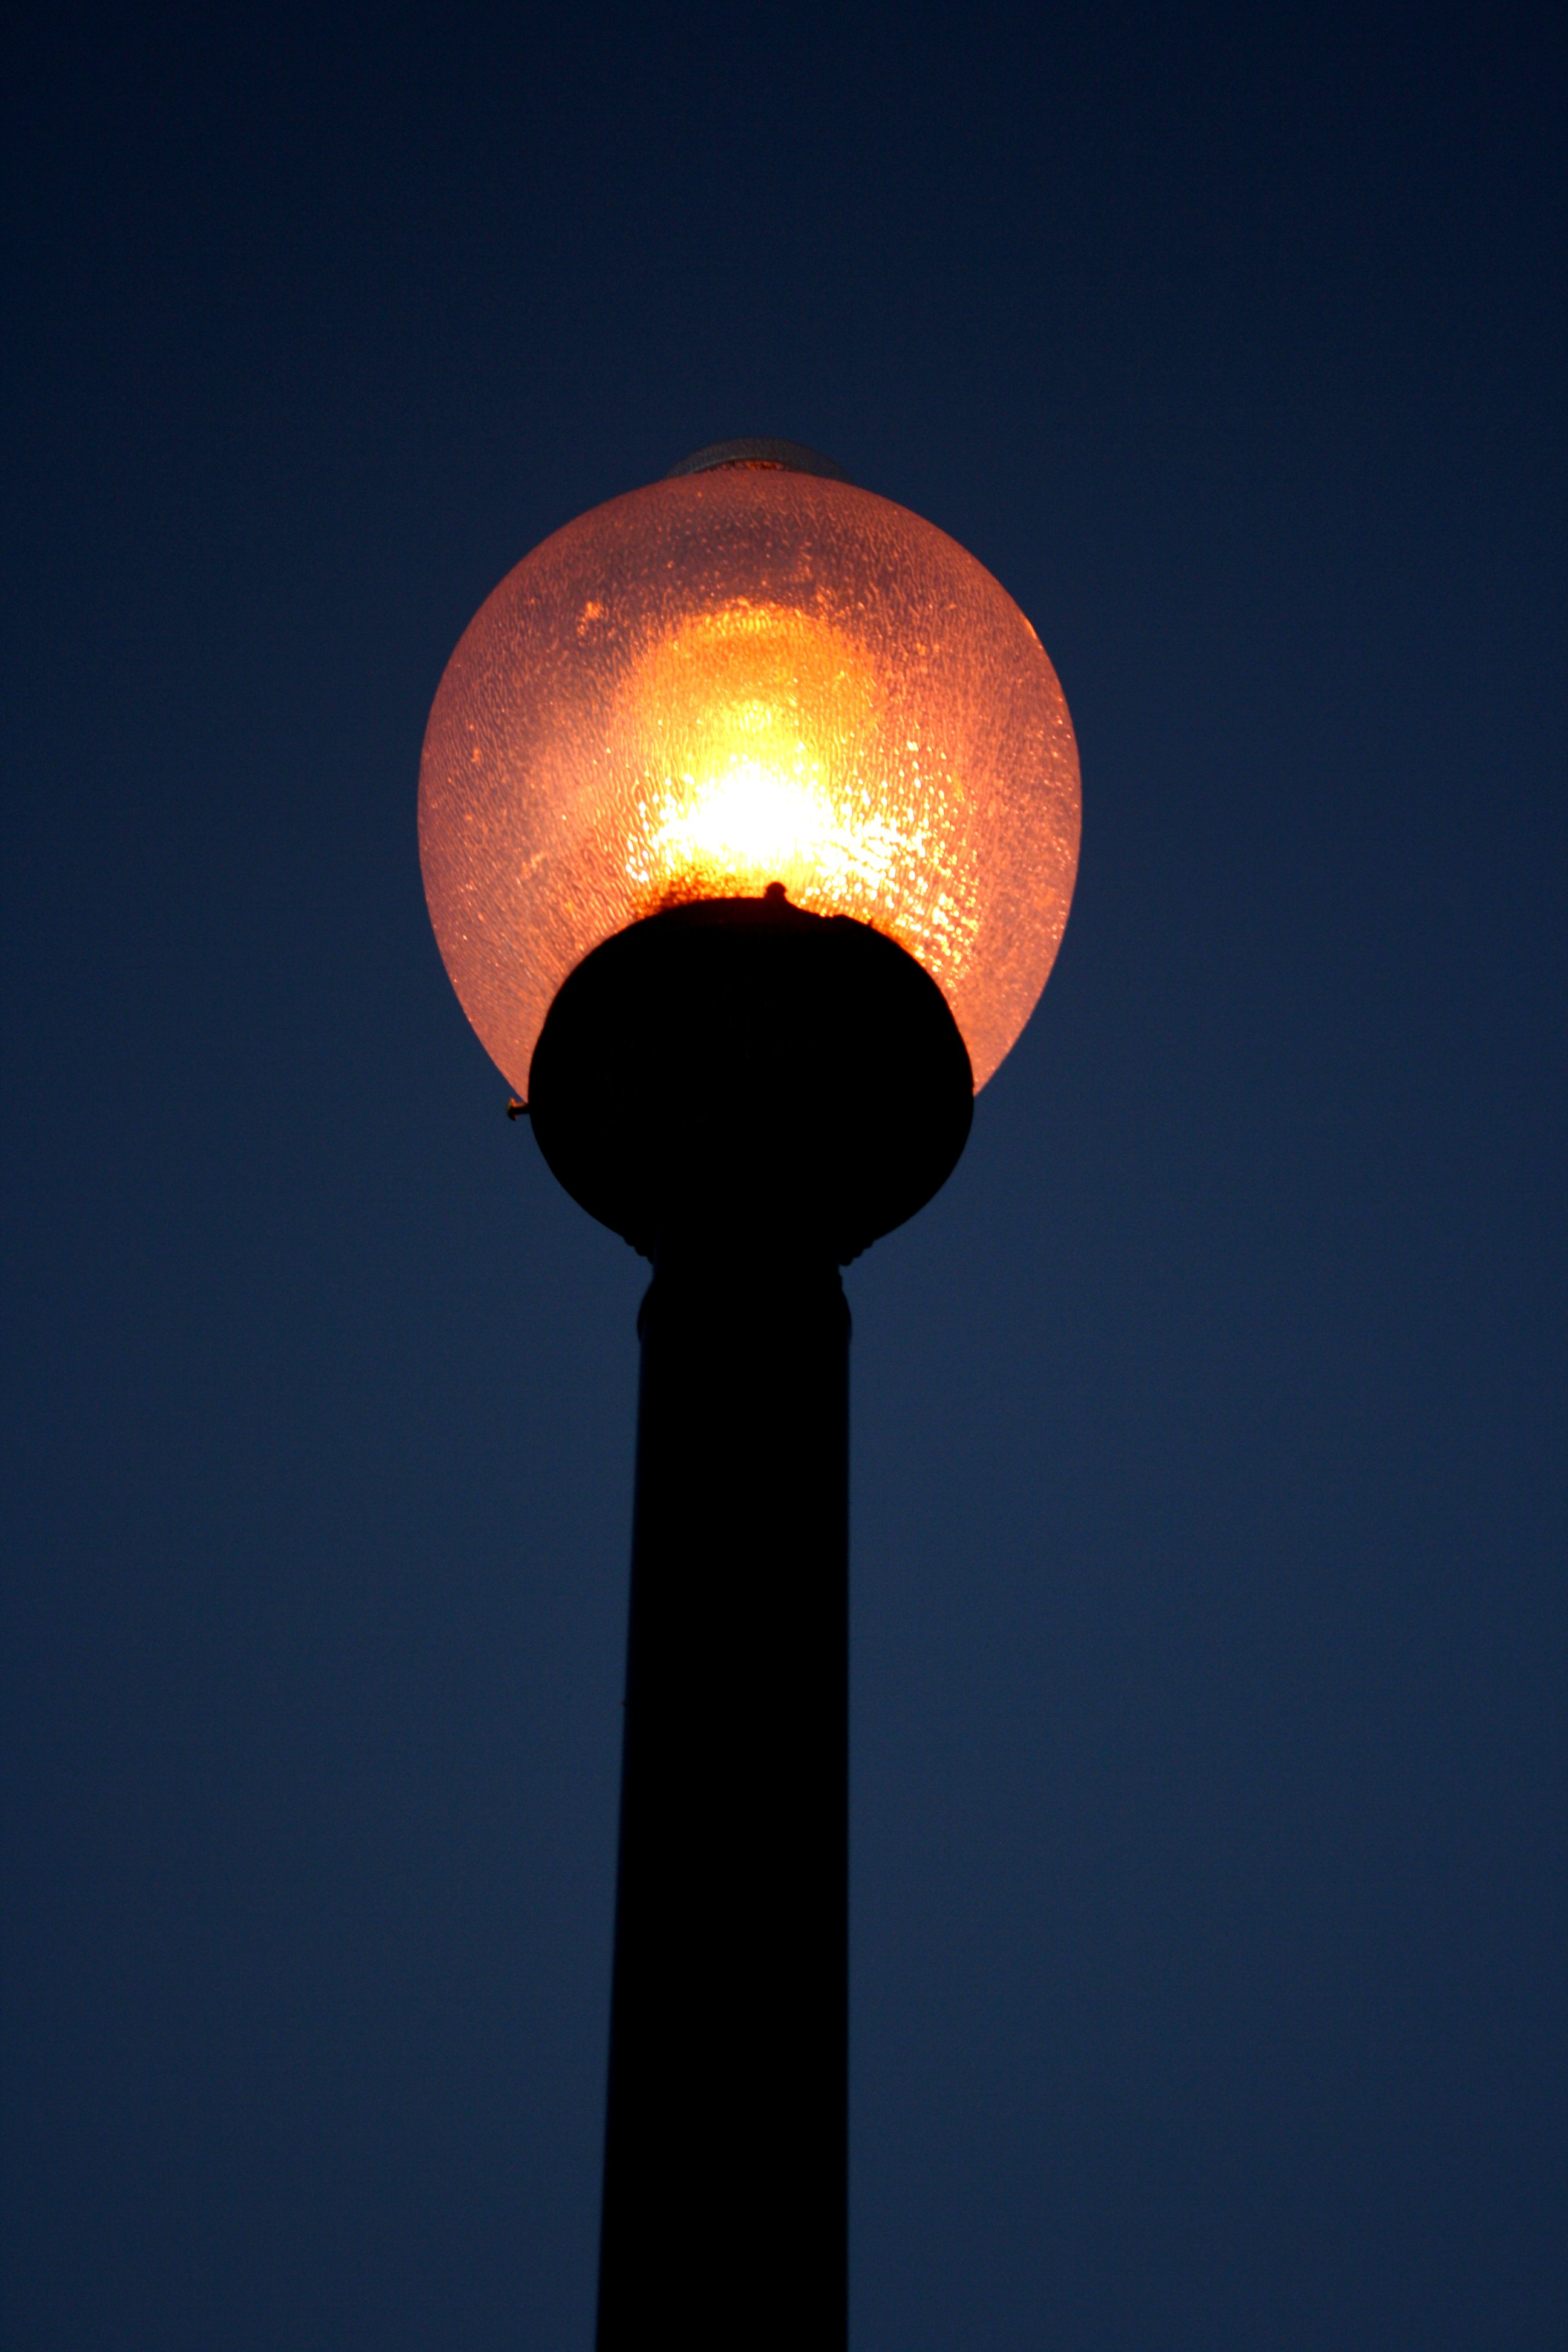 Decorative Lighted Street Lamp At Night Picture Free